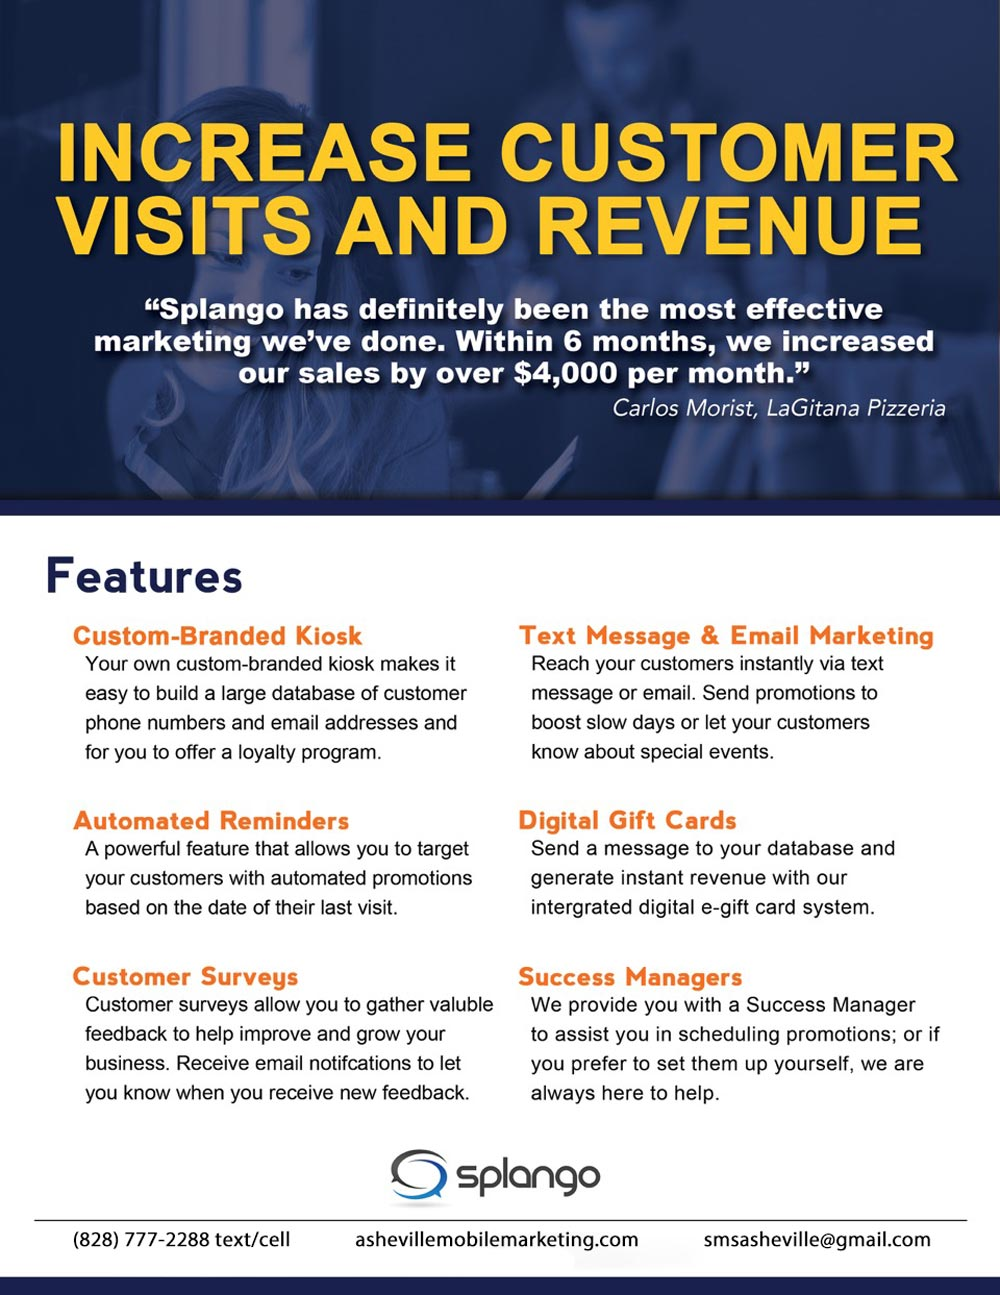 Mobile Marketing in Asheville, NC and the surrounding regions of WNC, Upstate SC, and Eastern TN.